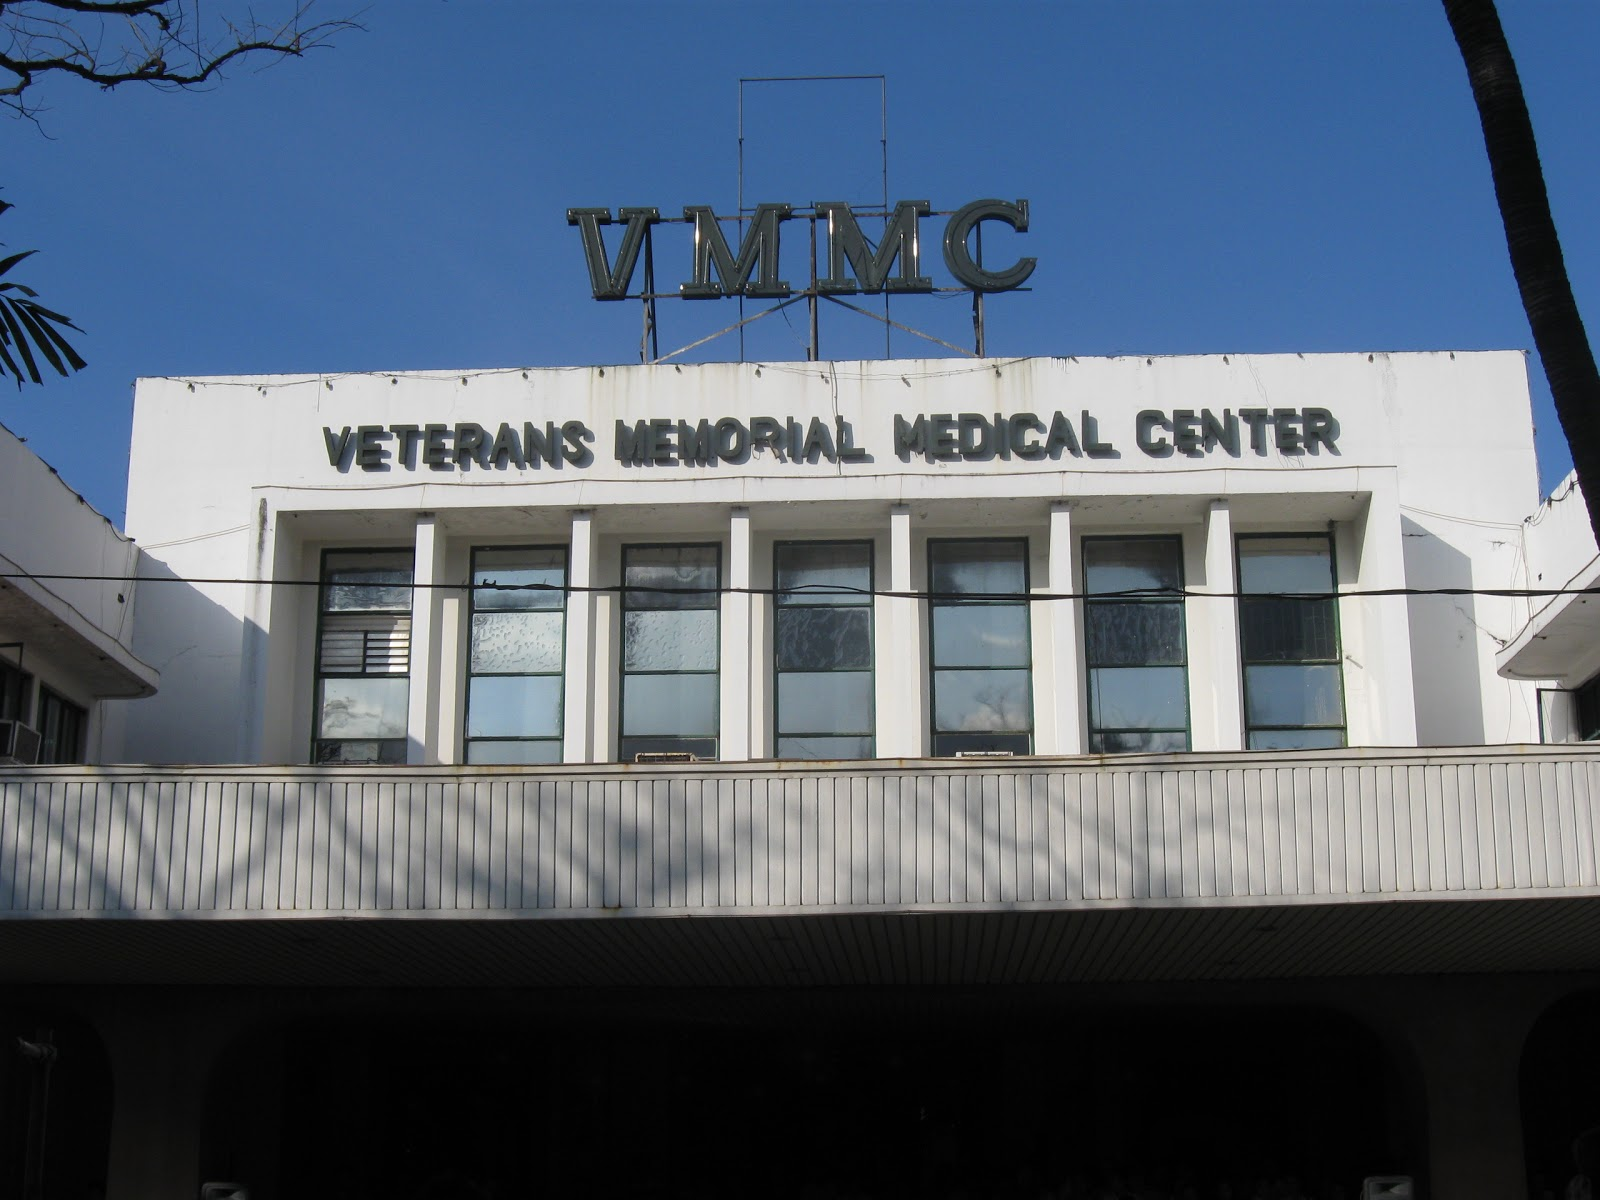 Veterans Memorial Medical Center